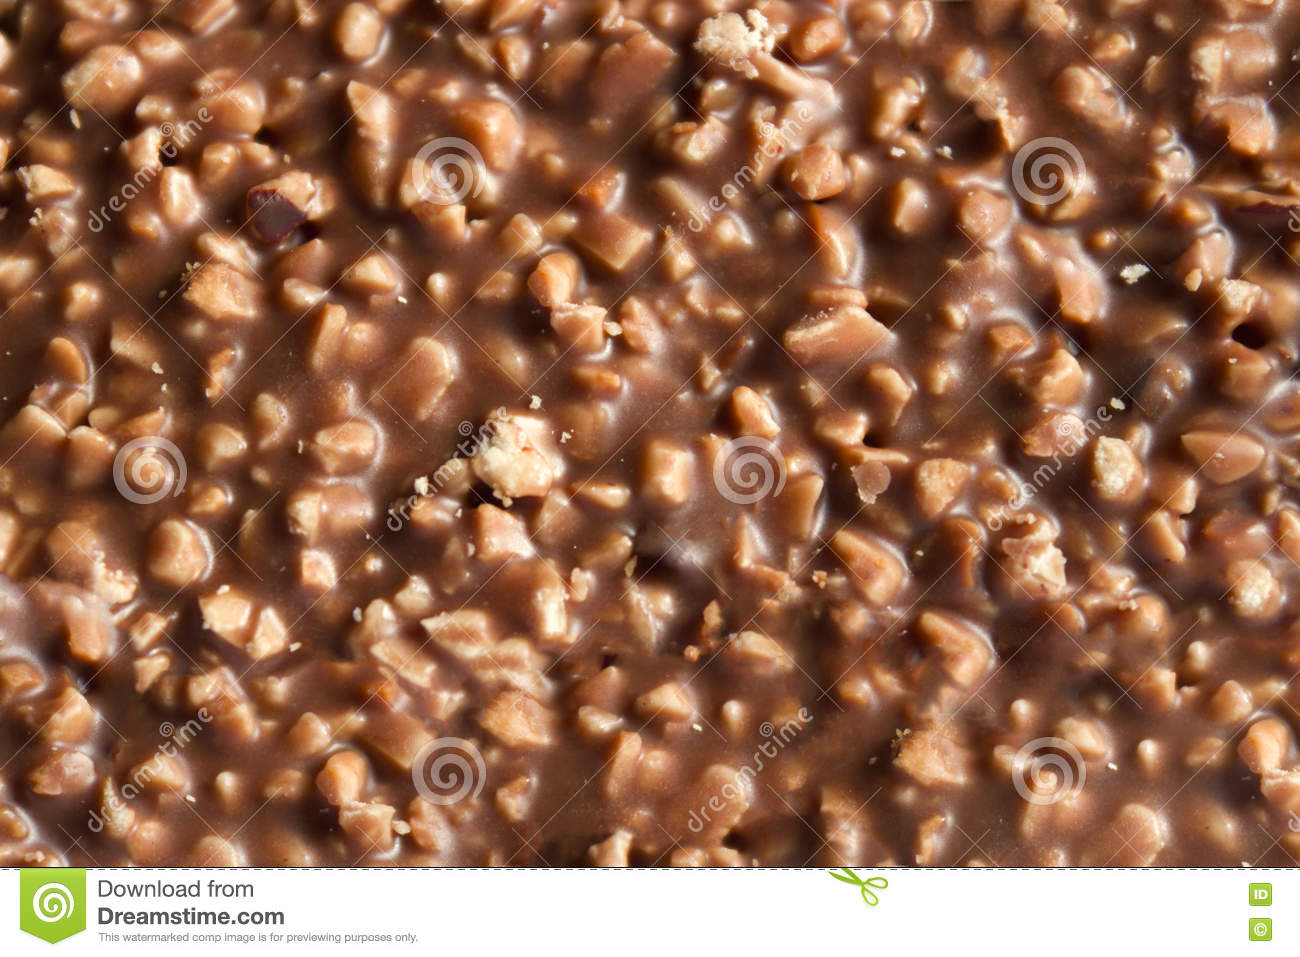 Chocolate With Nuts Texture Stock Photo - Image: 76300493